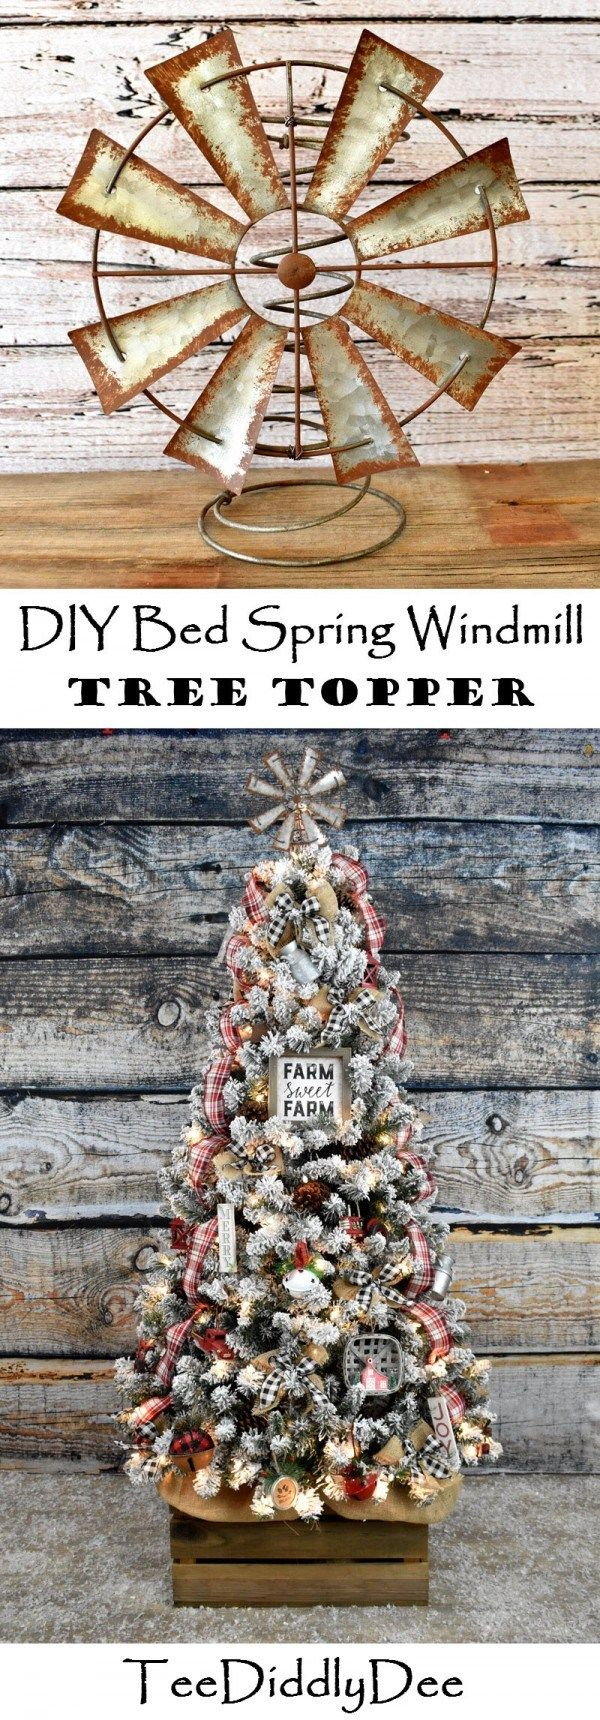 DIY Bed Spring Windmill Christmas Tree Topper - Vintage, Rustic, Farmhouse